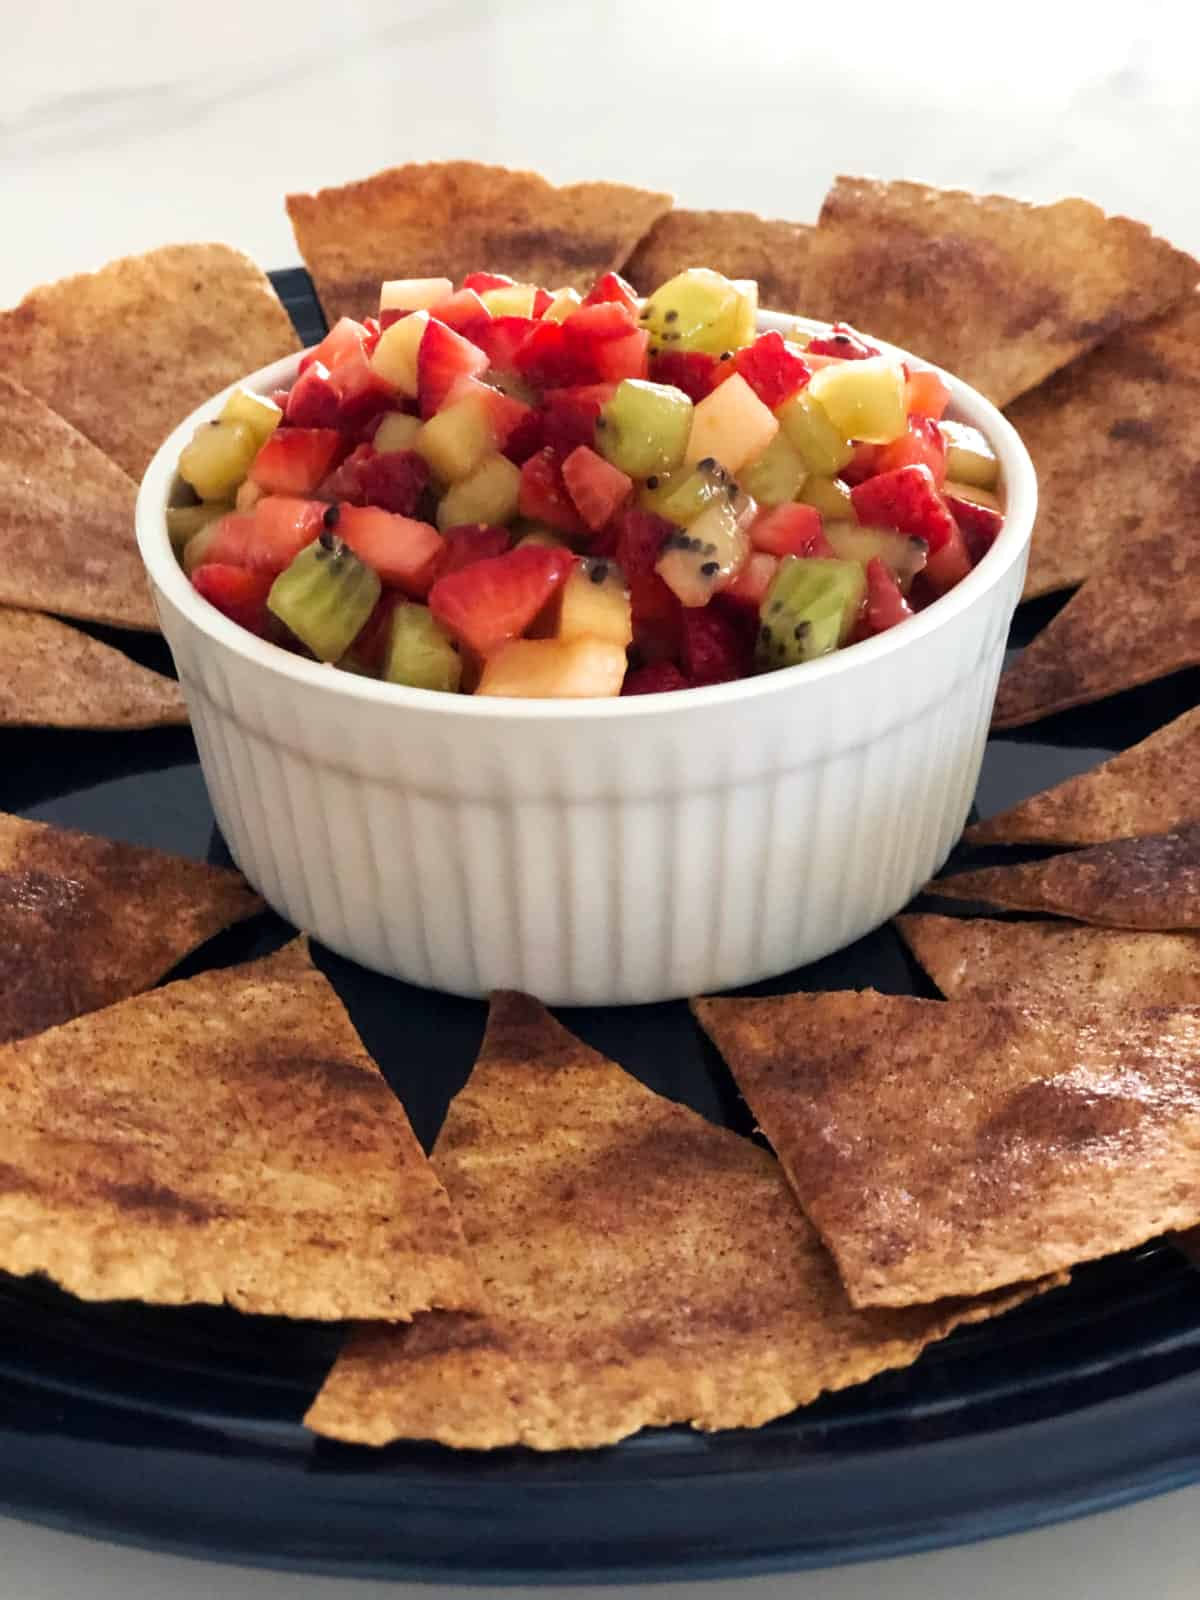 Cinnamon sugar crisps on platter with fruit salsa in white ramekin in center.